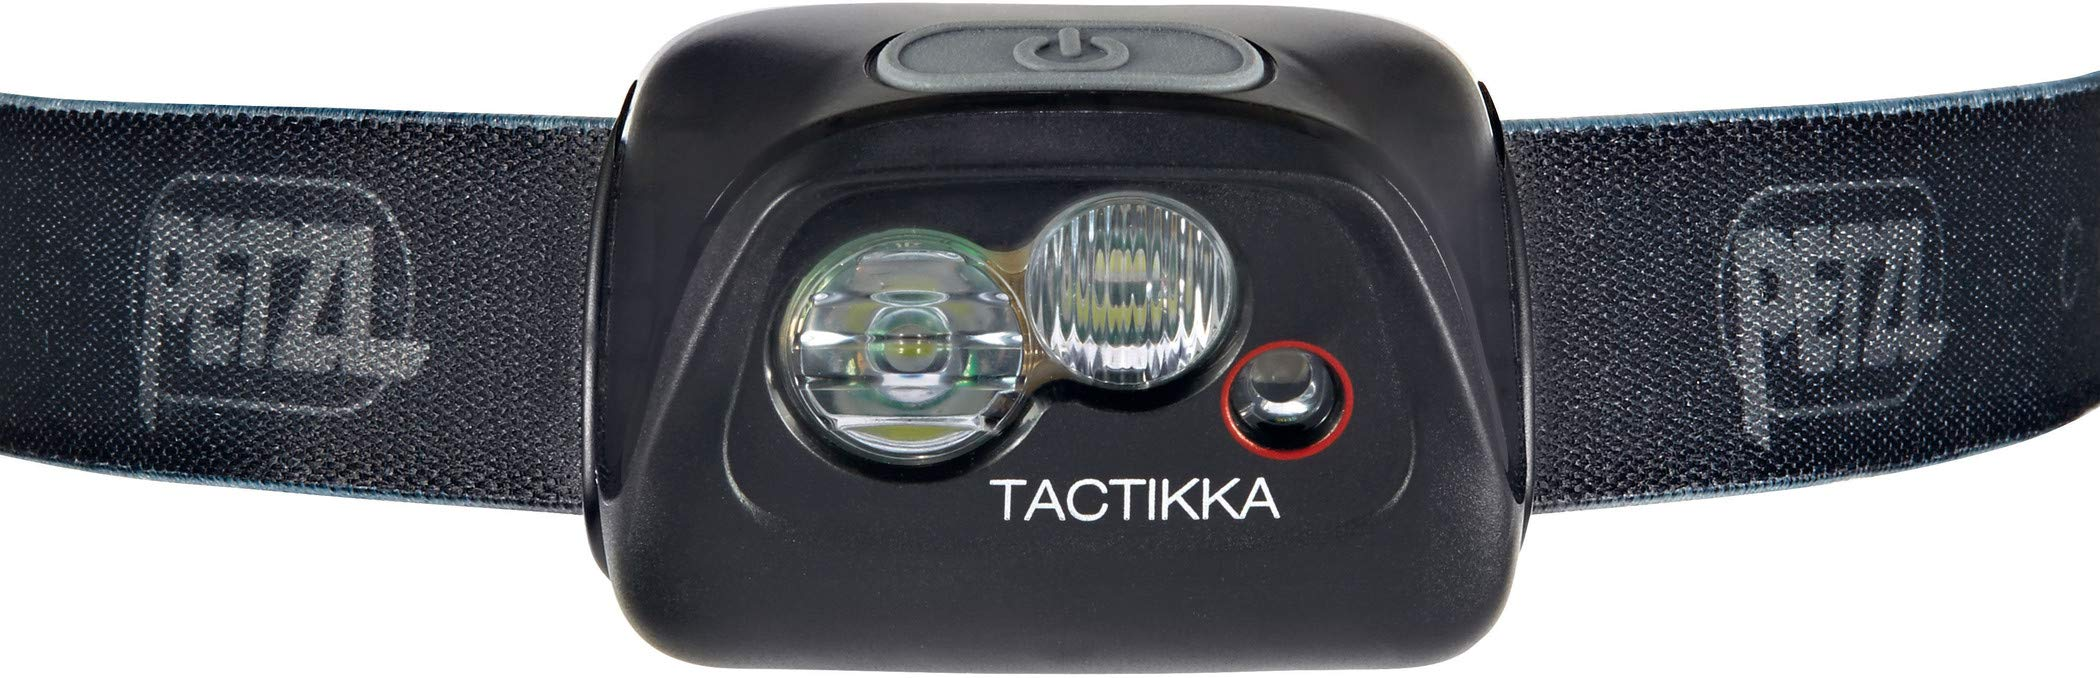 31H45zCPetzl E99ADA NEW TACTIKKA CORE Compact Multi-Beam Headlamp with Red Lighting and Rechargeable Battery, 350 lm%2BP8L